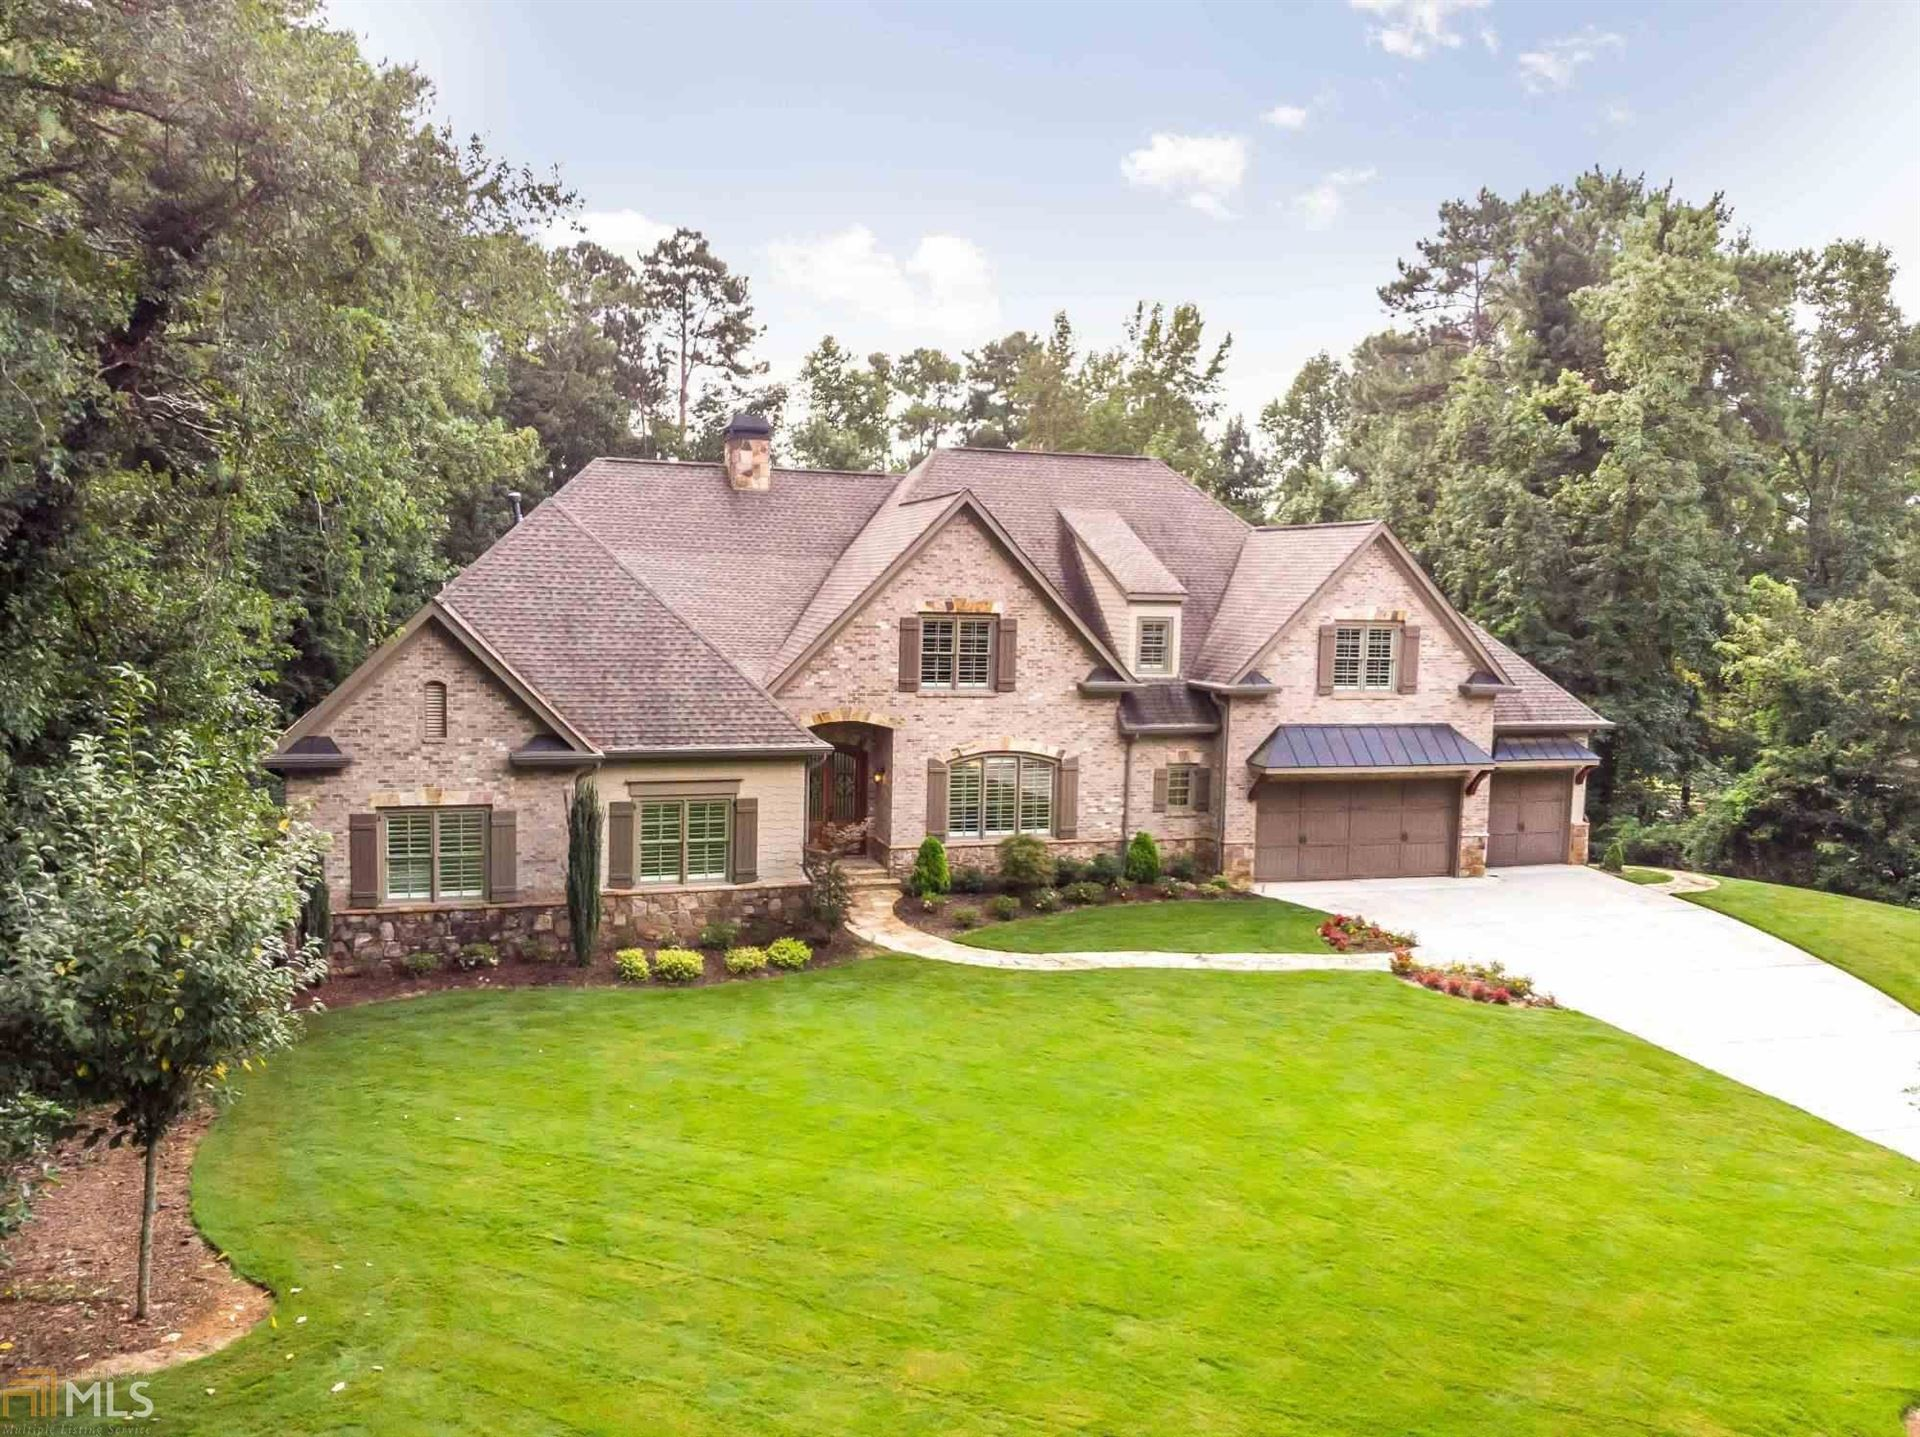 11105 Willow Wood Dr, Roswell, GA 30075 - MLS#: 8859818